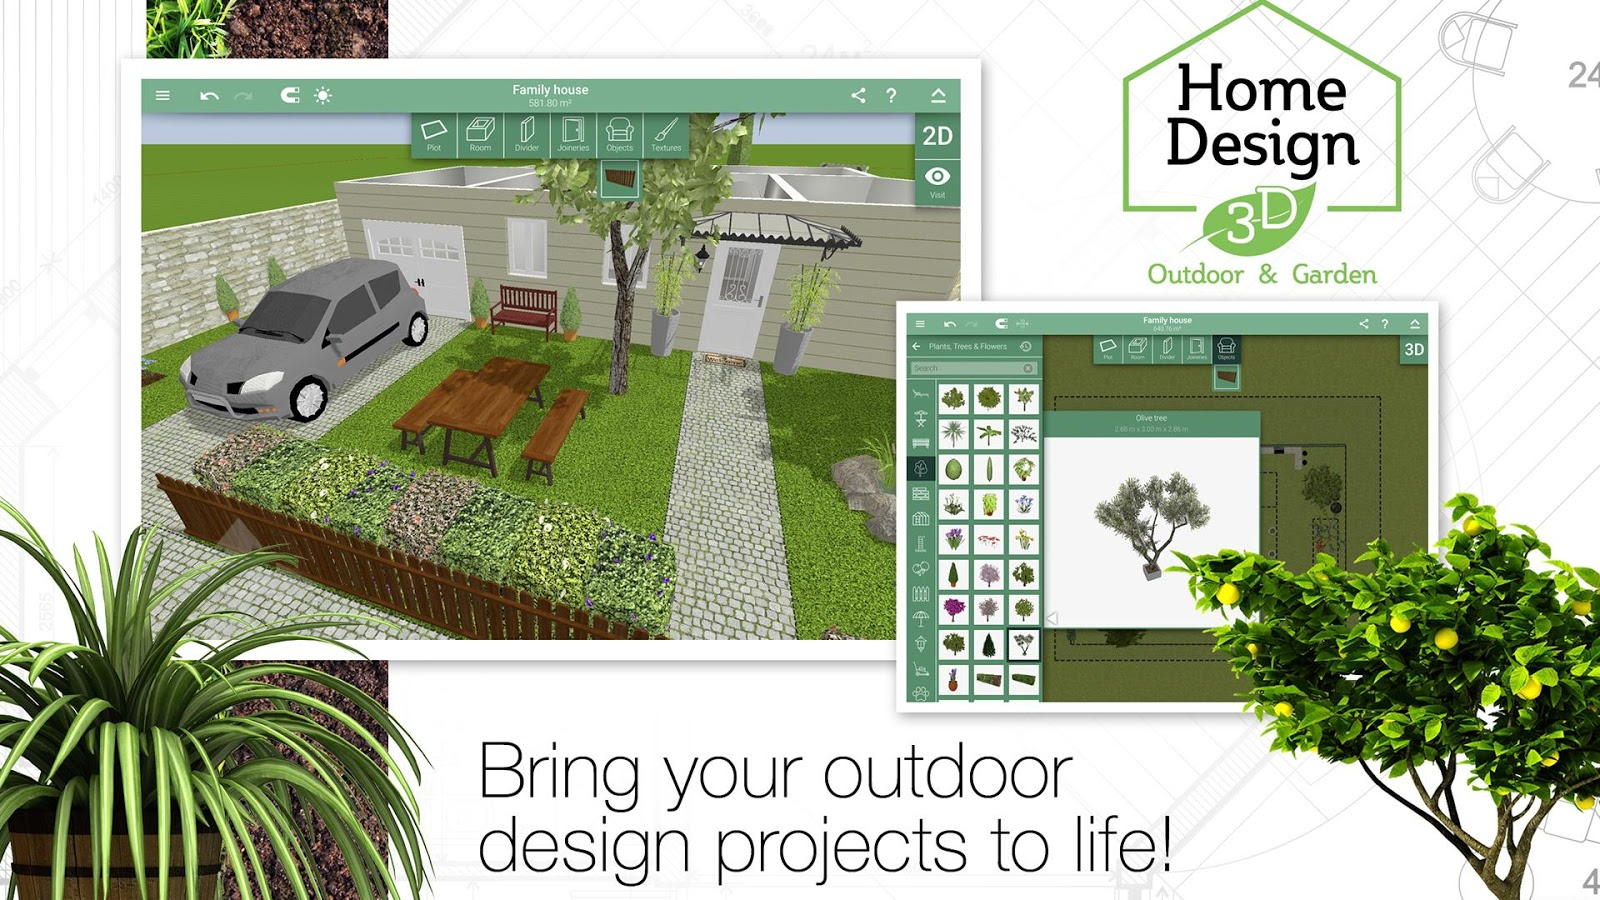 Home design 3d outdoor garden android apps on google play for Home garden design